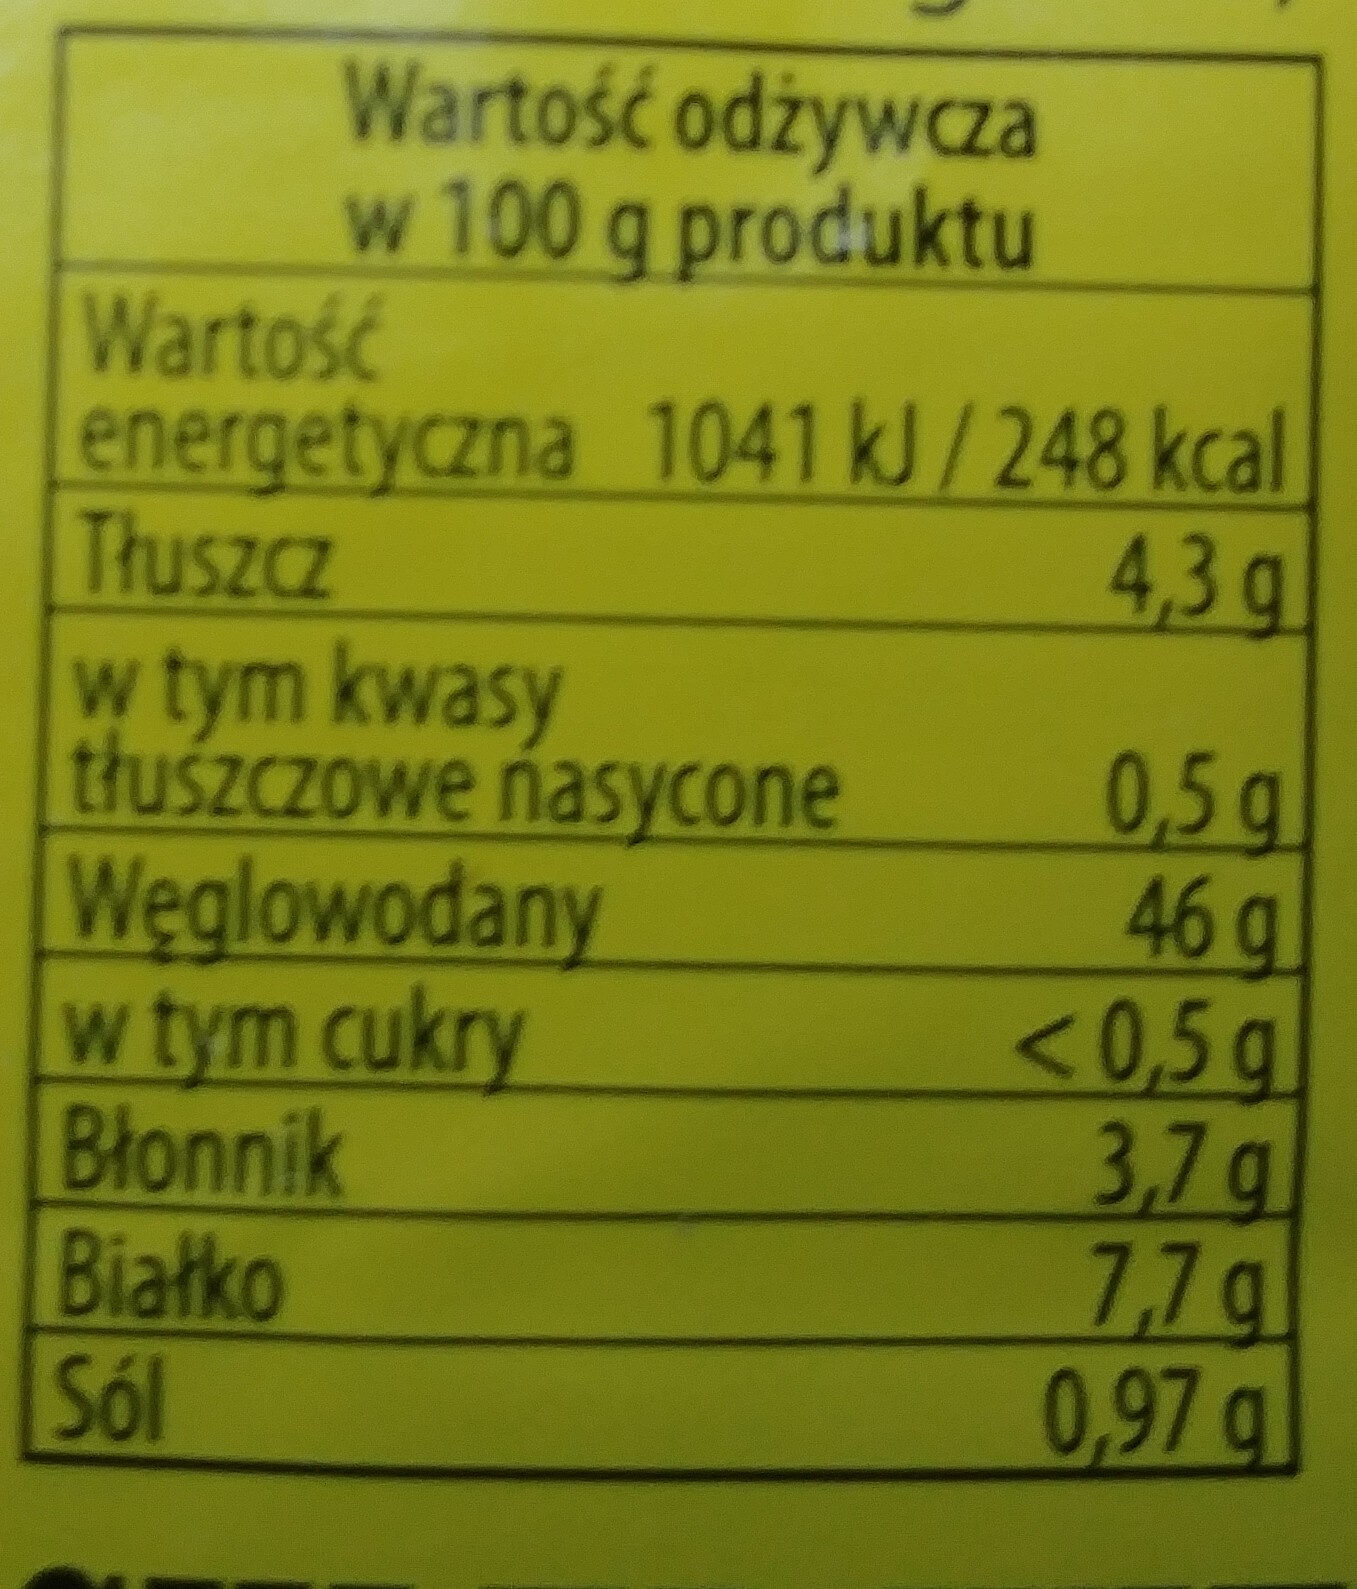 Chleb wieloziarnisty - Nutrition facts - pl